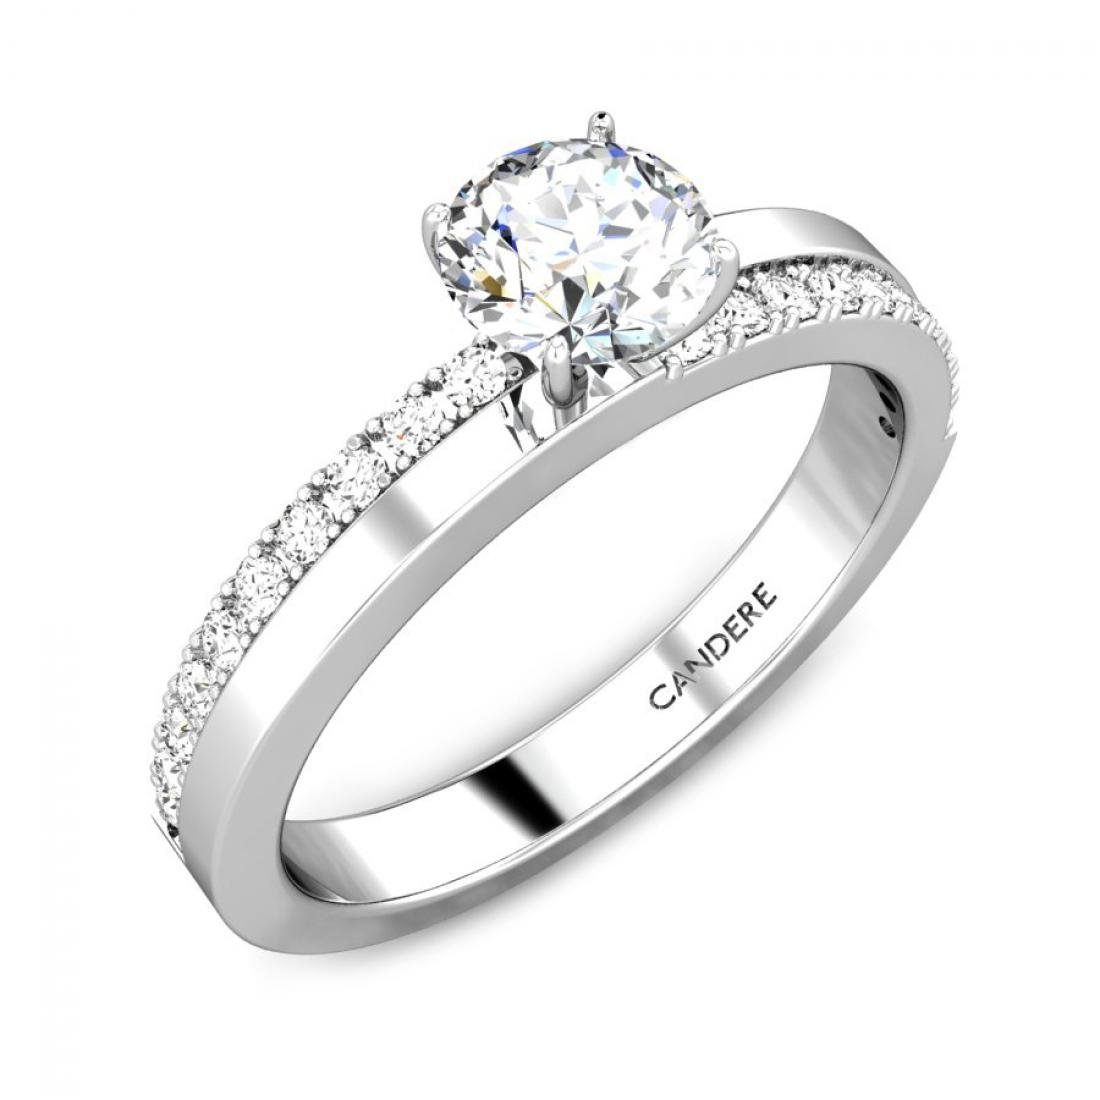 1/2 ctw (0.54 Carat) Round Diamond 925 Sterling Silver Solitaire Engagement Ring